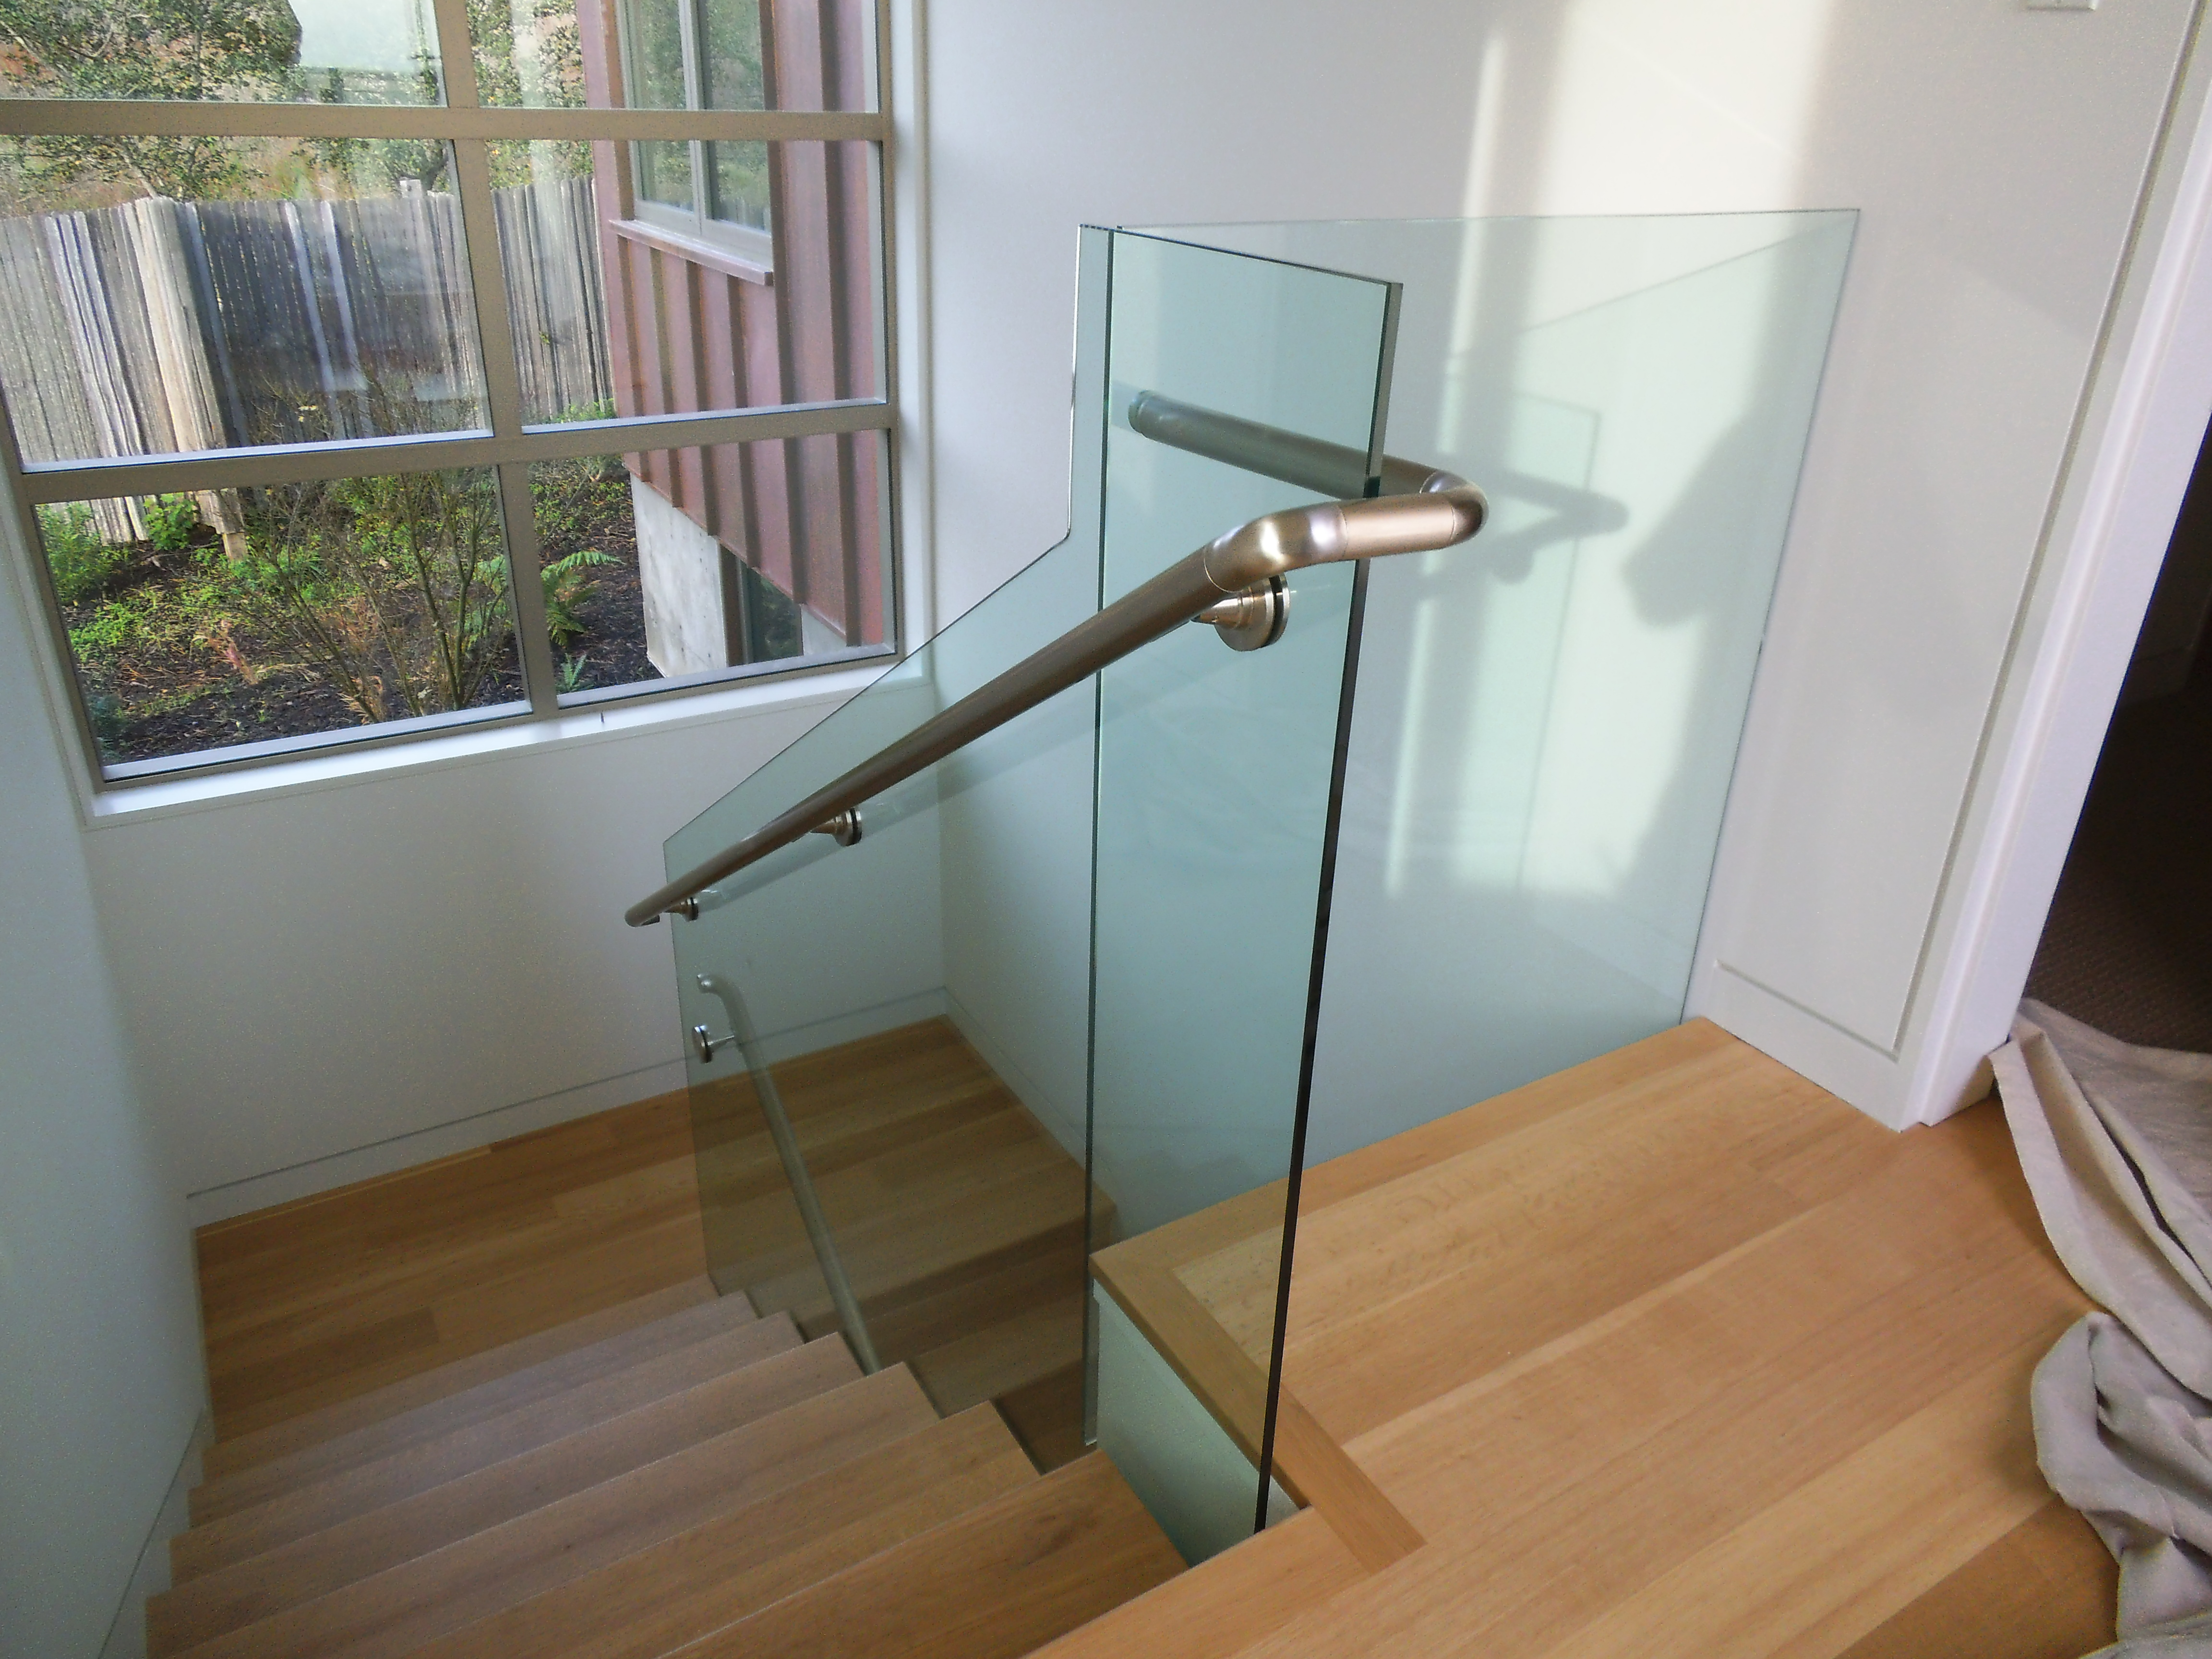 Glass Installation Photos Shower Stair Well Satin Etch Shower And